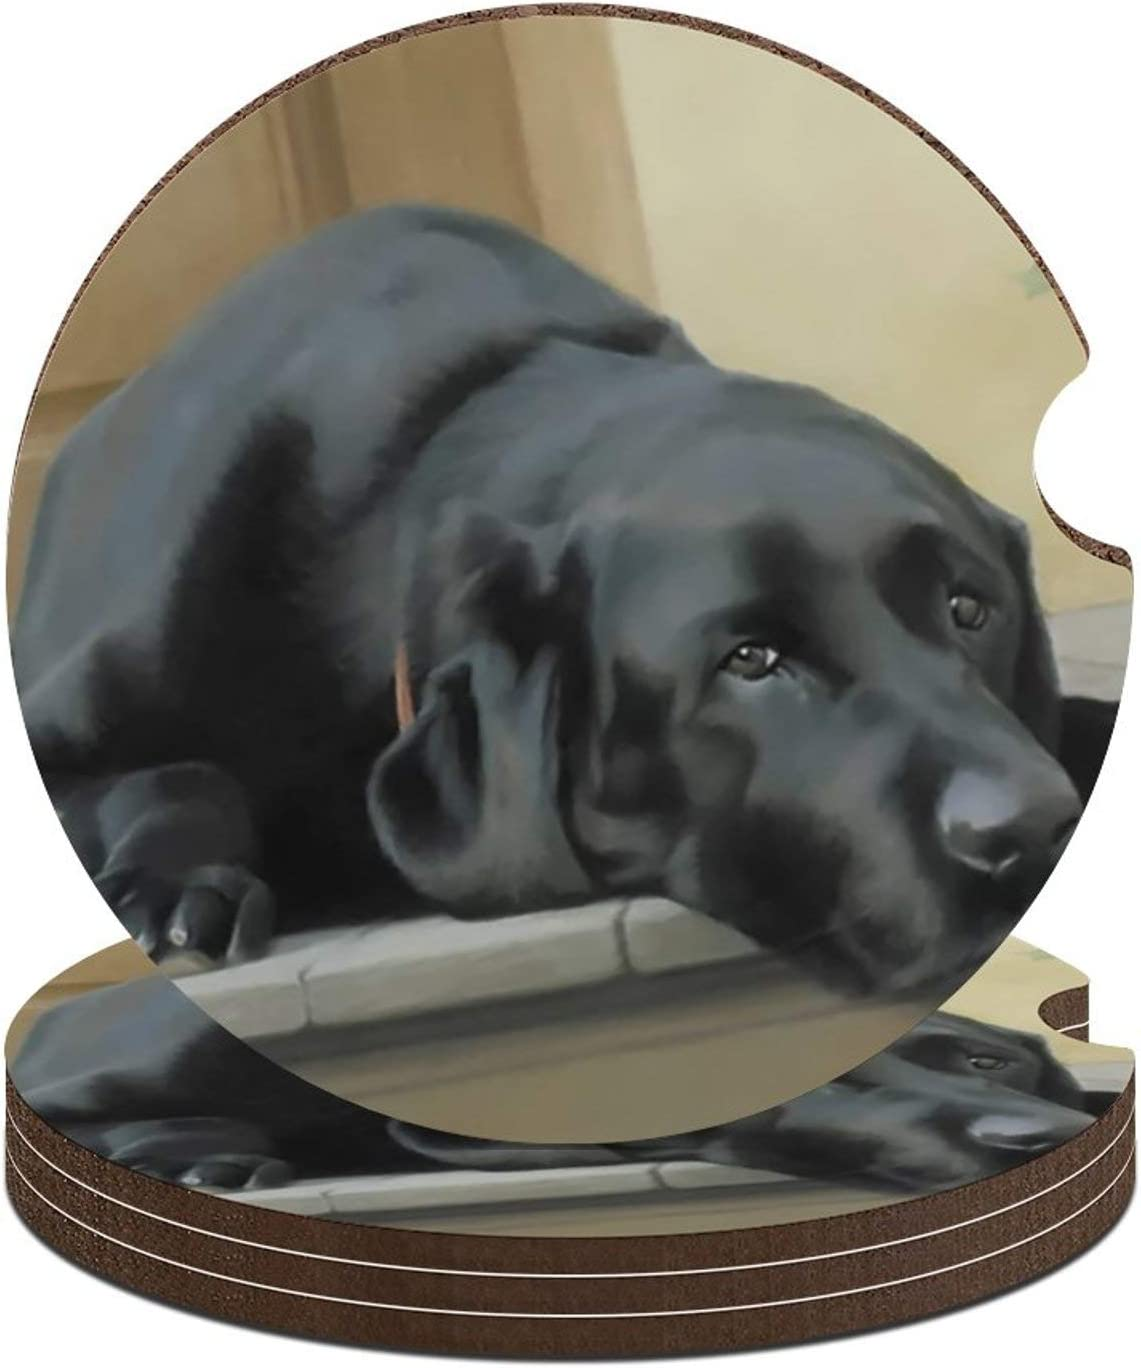 Car Coasters for Women/Men - 1/4/6 Pack Absorbent Black Lab Ceramic Coasters with Rubber Backing Easy Fetch